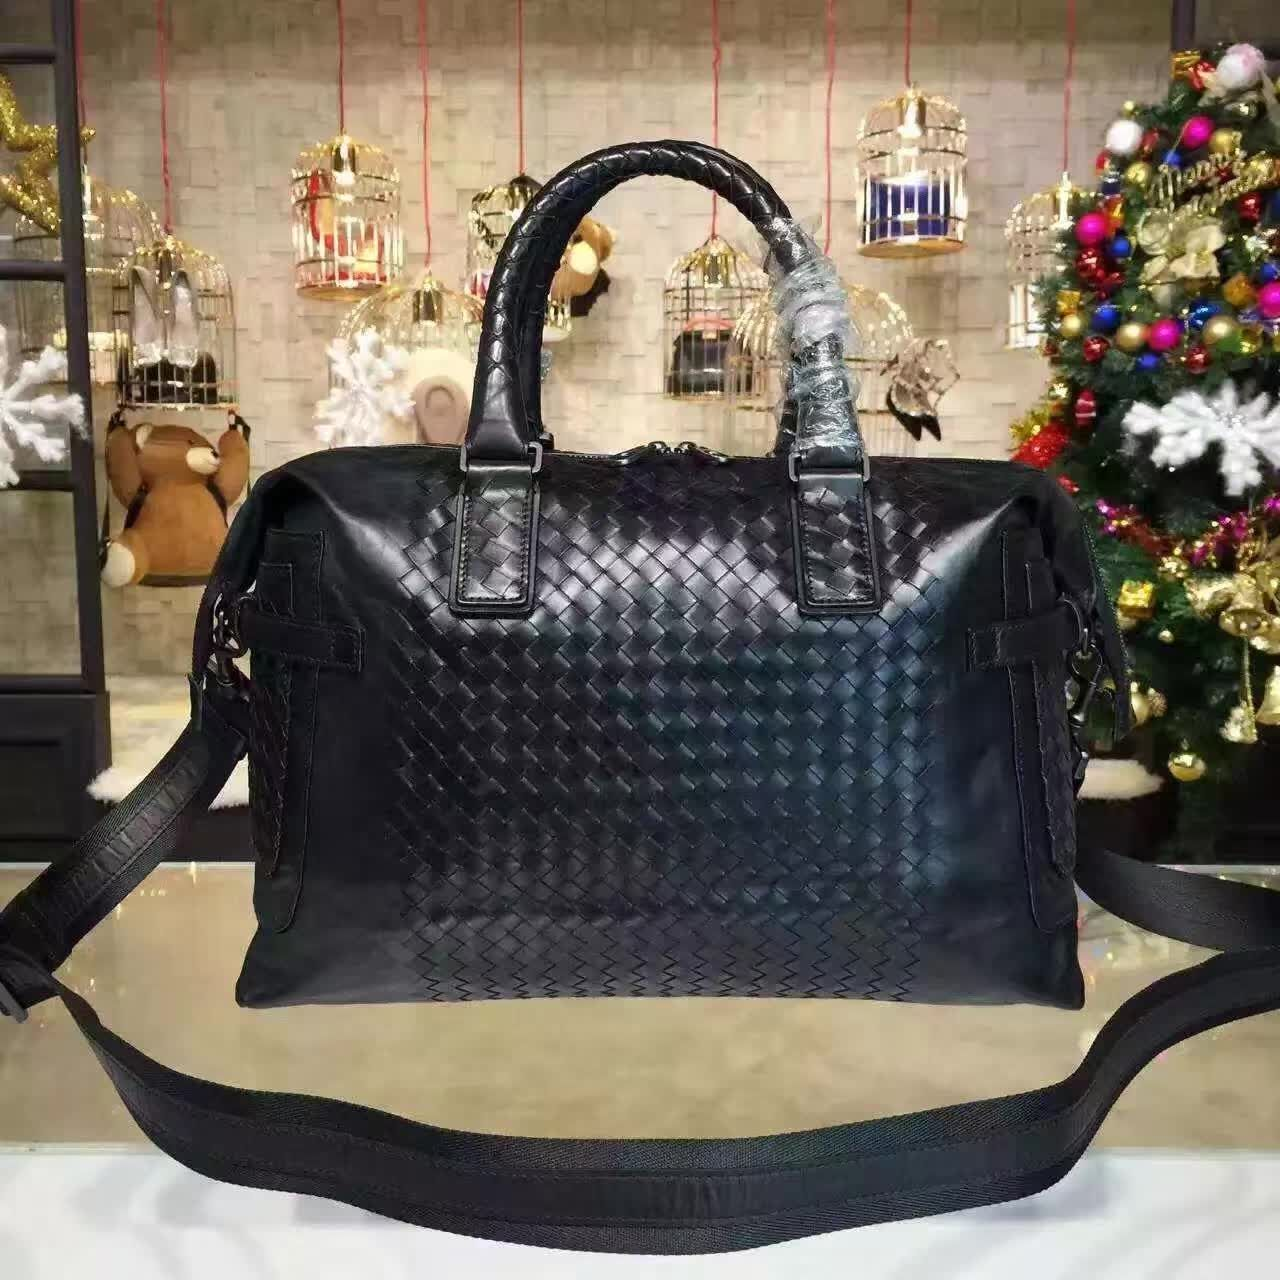 bottega veneta Bag, ID : 58309(FORSALE:a@yybags.com), bottega bag ...